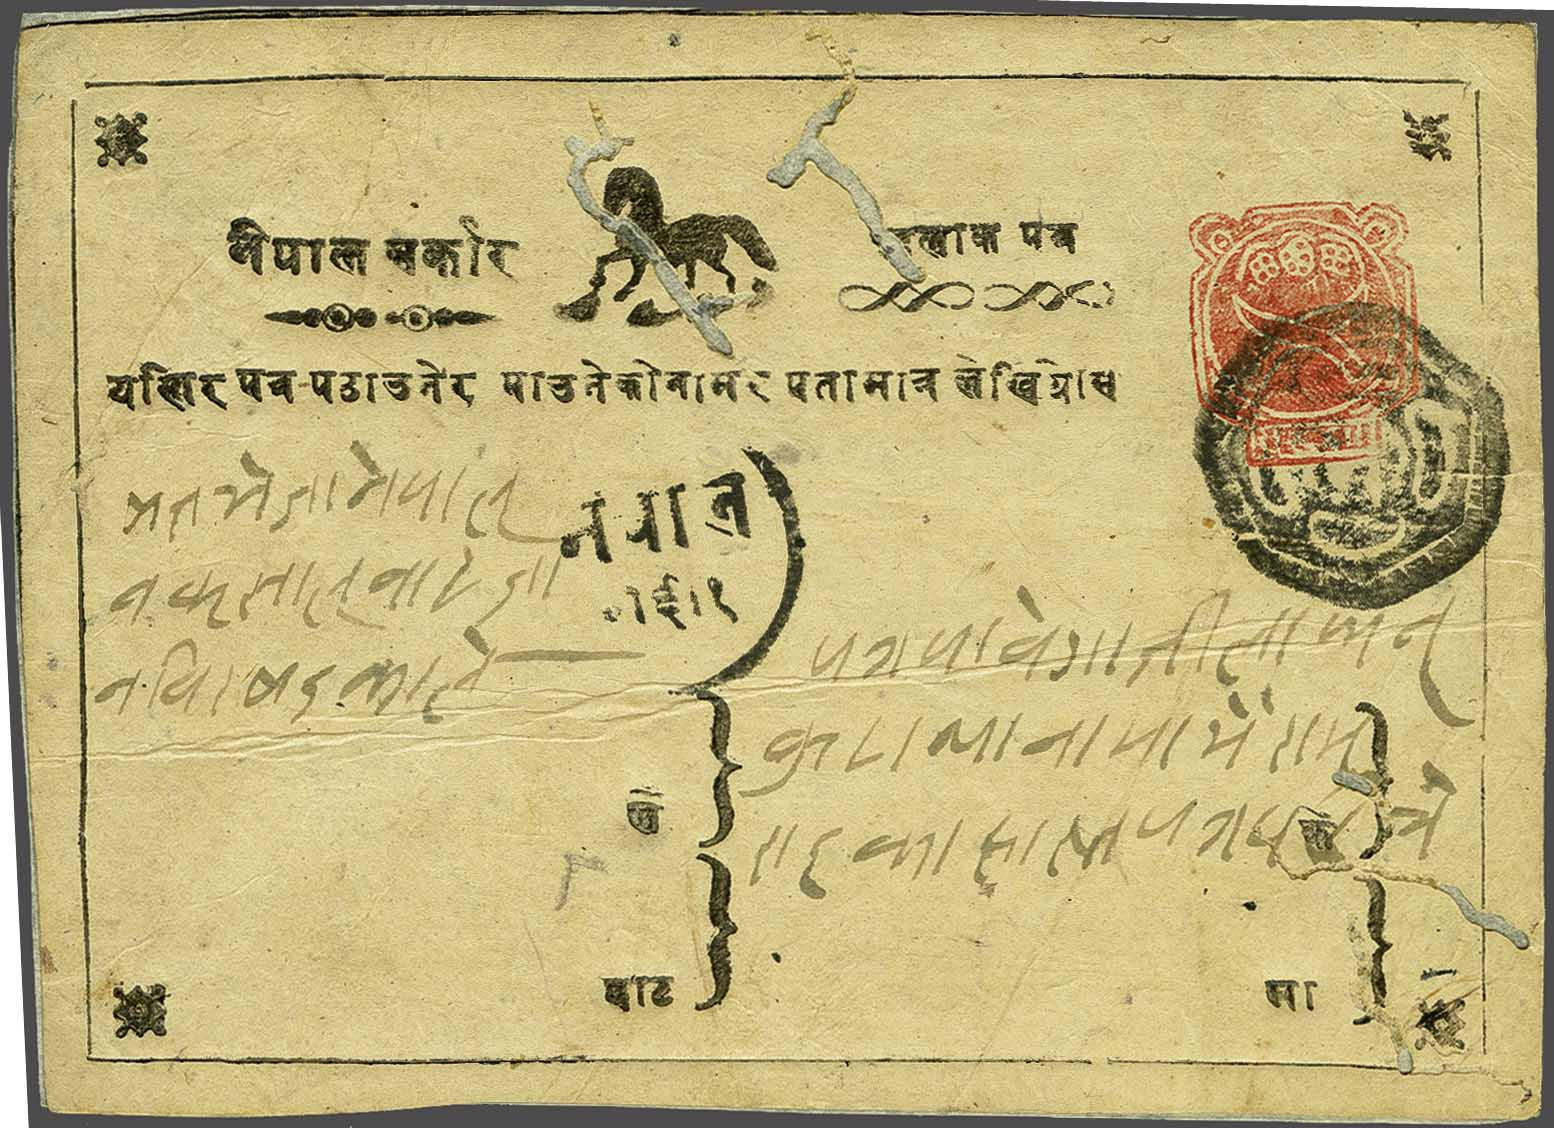 Lot 20 - Great Britain and former colonies Nepal -  Corinphila Veilingen Auction 245-246 Day 1 - Nepal - The Dick van der Wateren Collection, Foreign countries - Single lots, Picture postcards